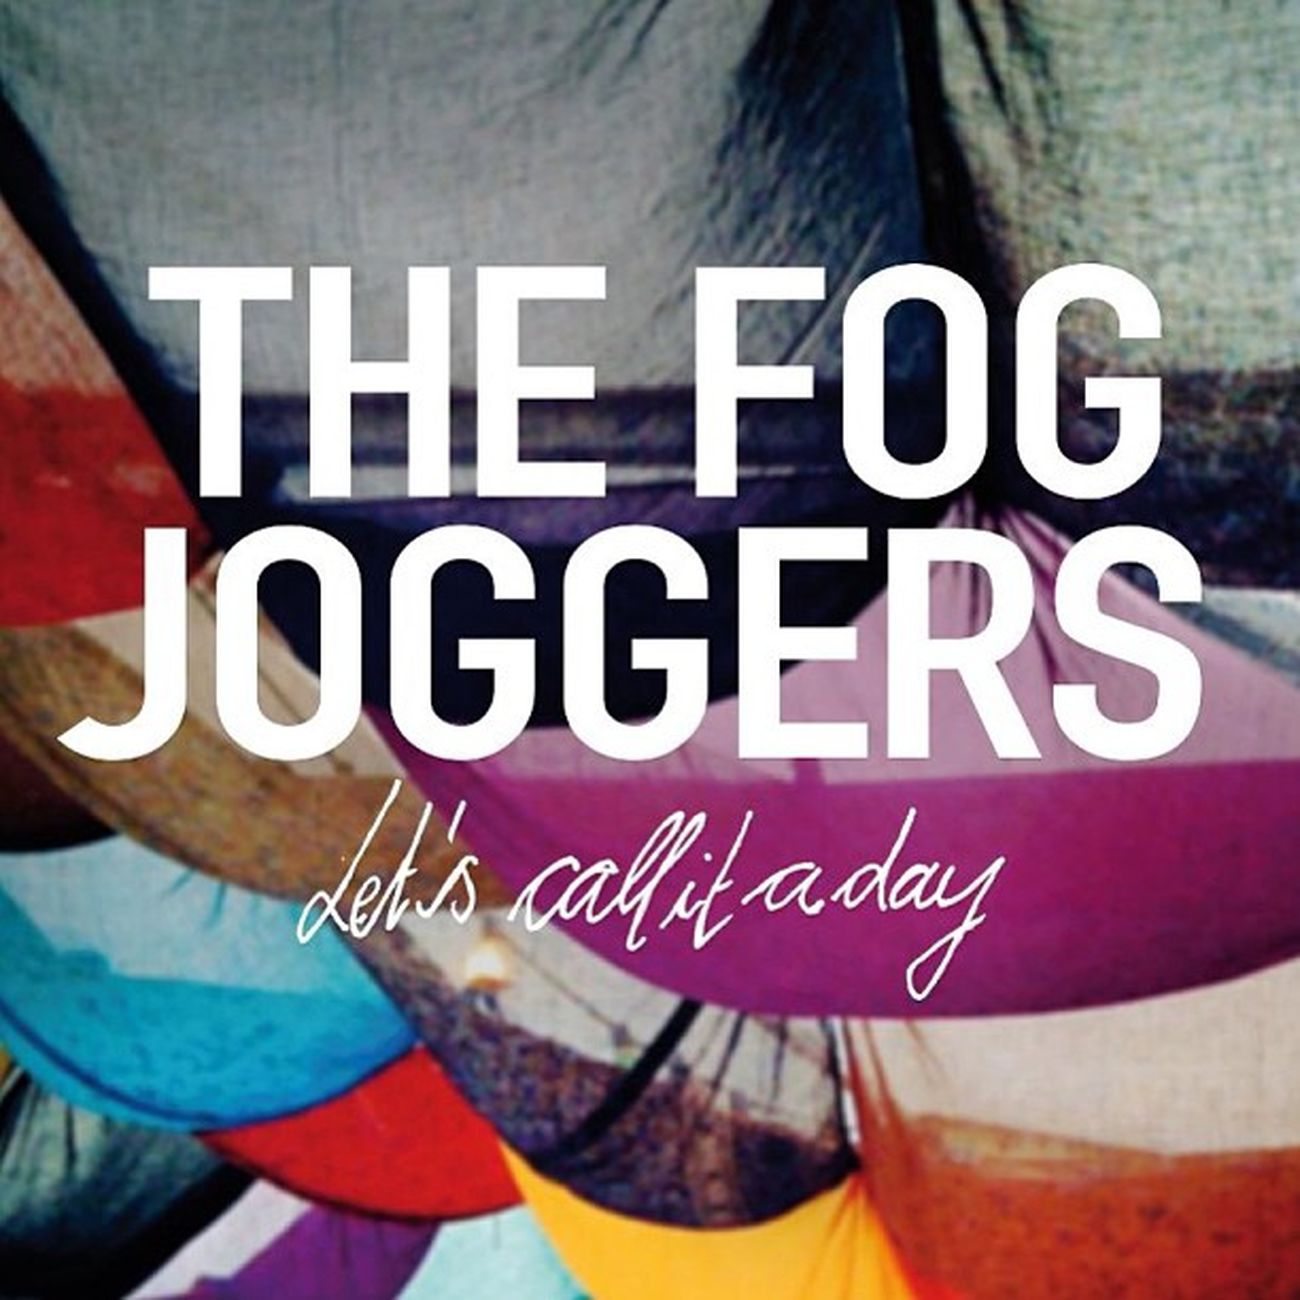 Thefogjoggers Album Cover Letscallitaday music cd